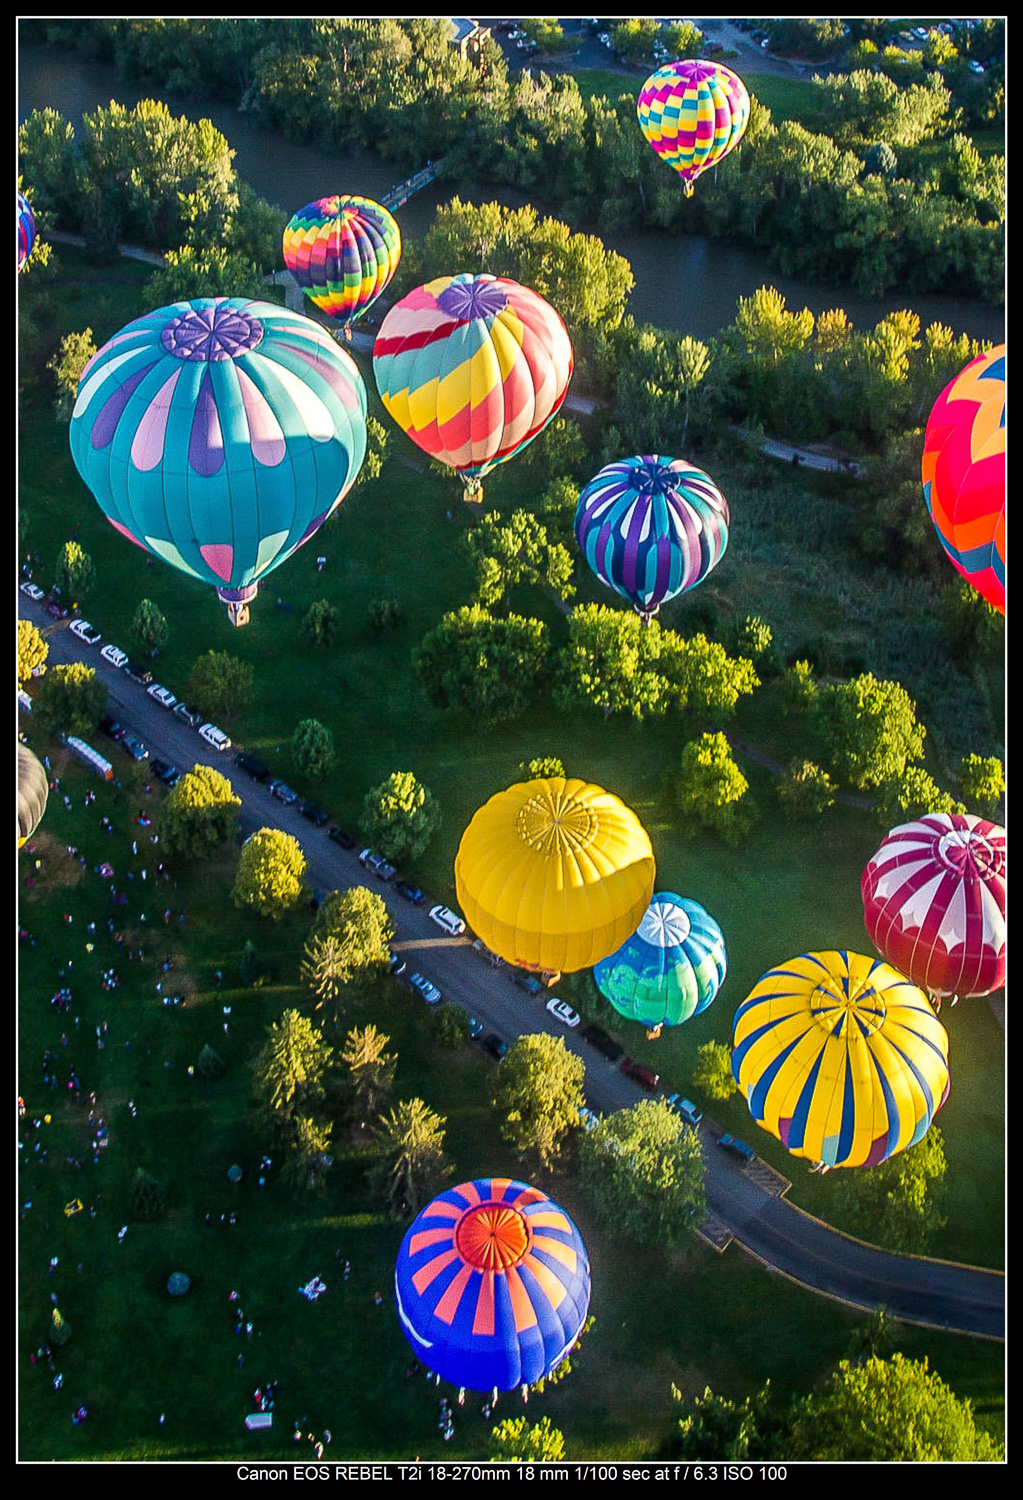 Hot air balloons lift off from Ann Morrison Park in Boise, Idaho.